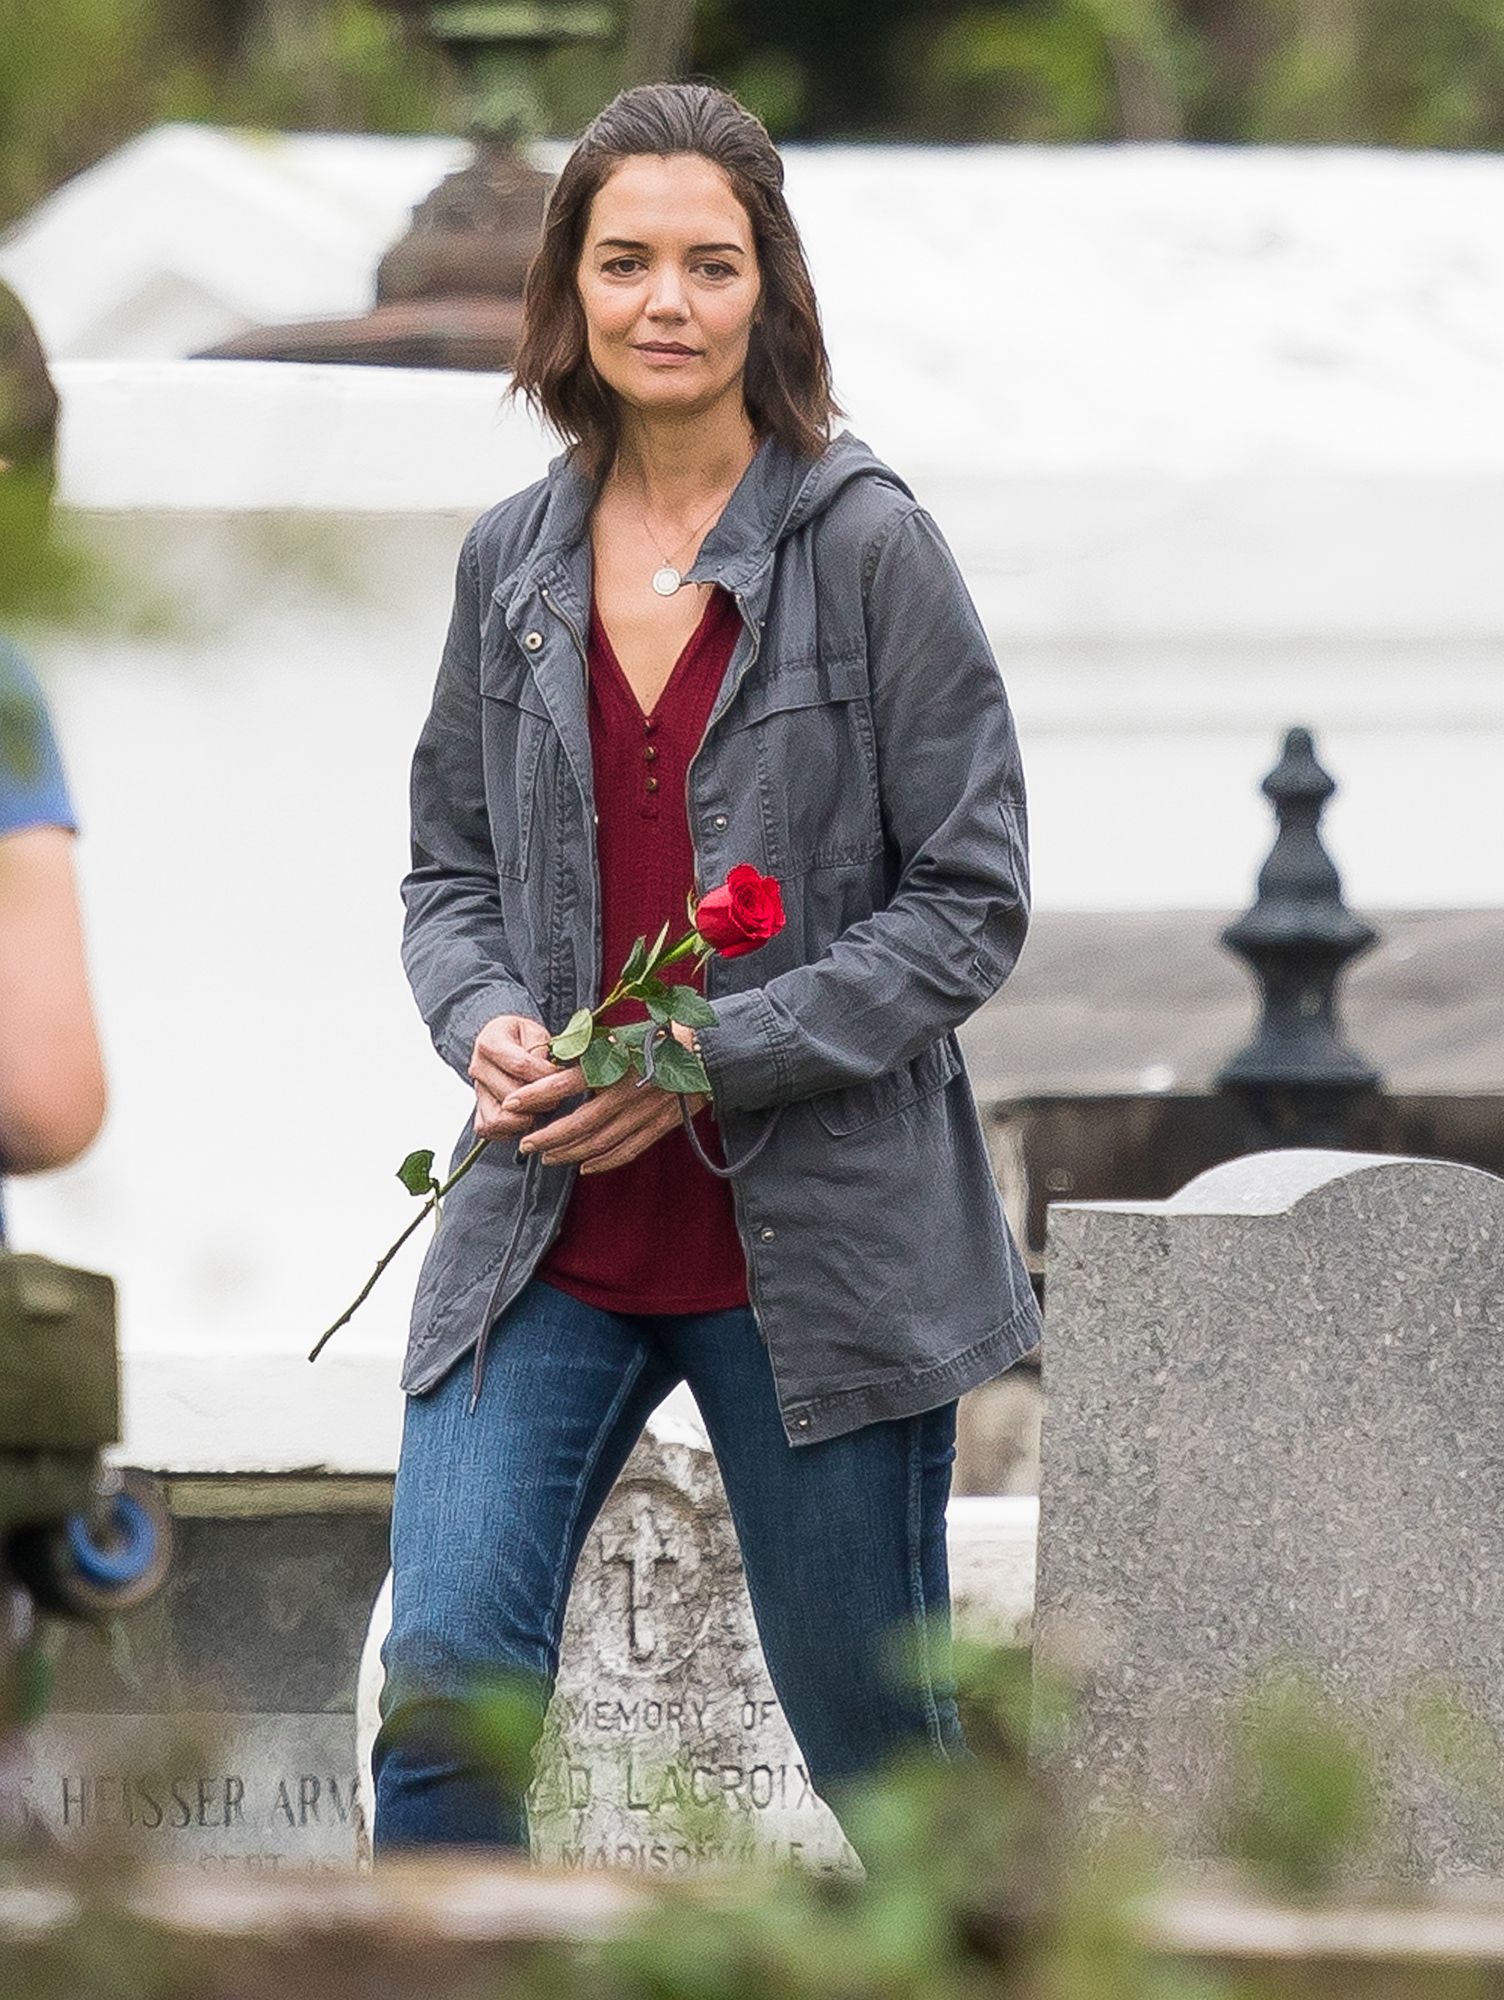 EXCLUSIVE: Katie Holmes holding a red rose while filming a graveyard scene on the set of her new movie in New Orleans.